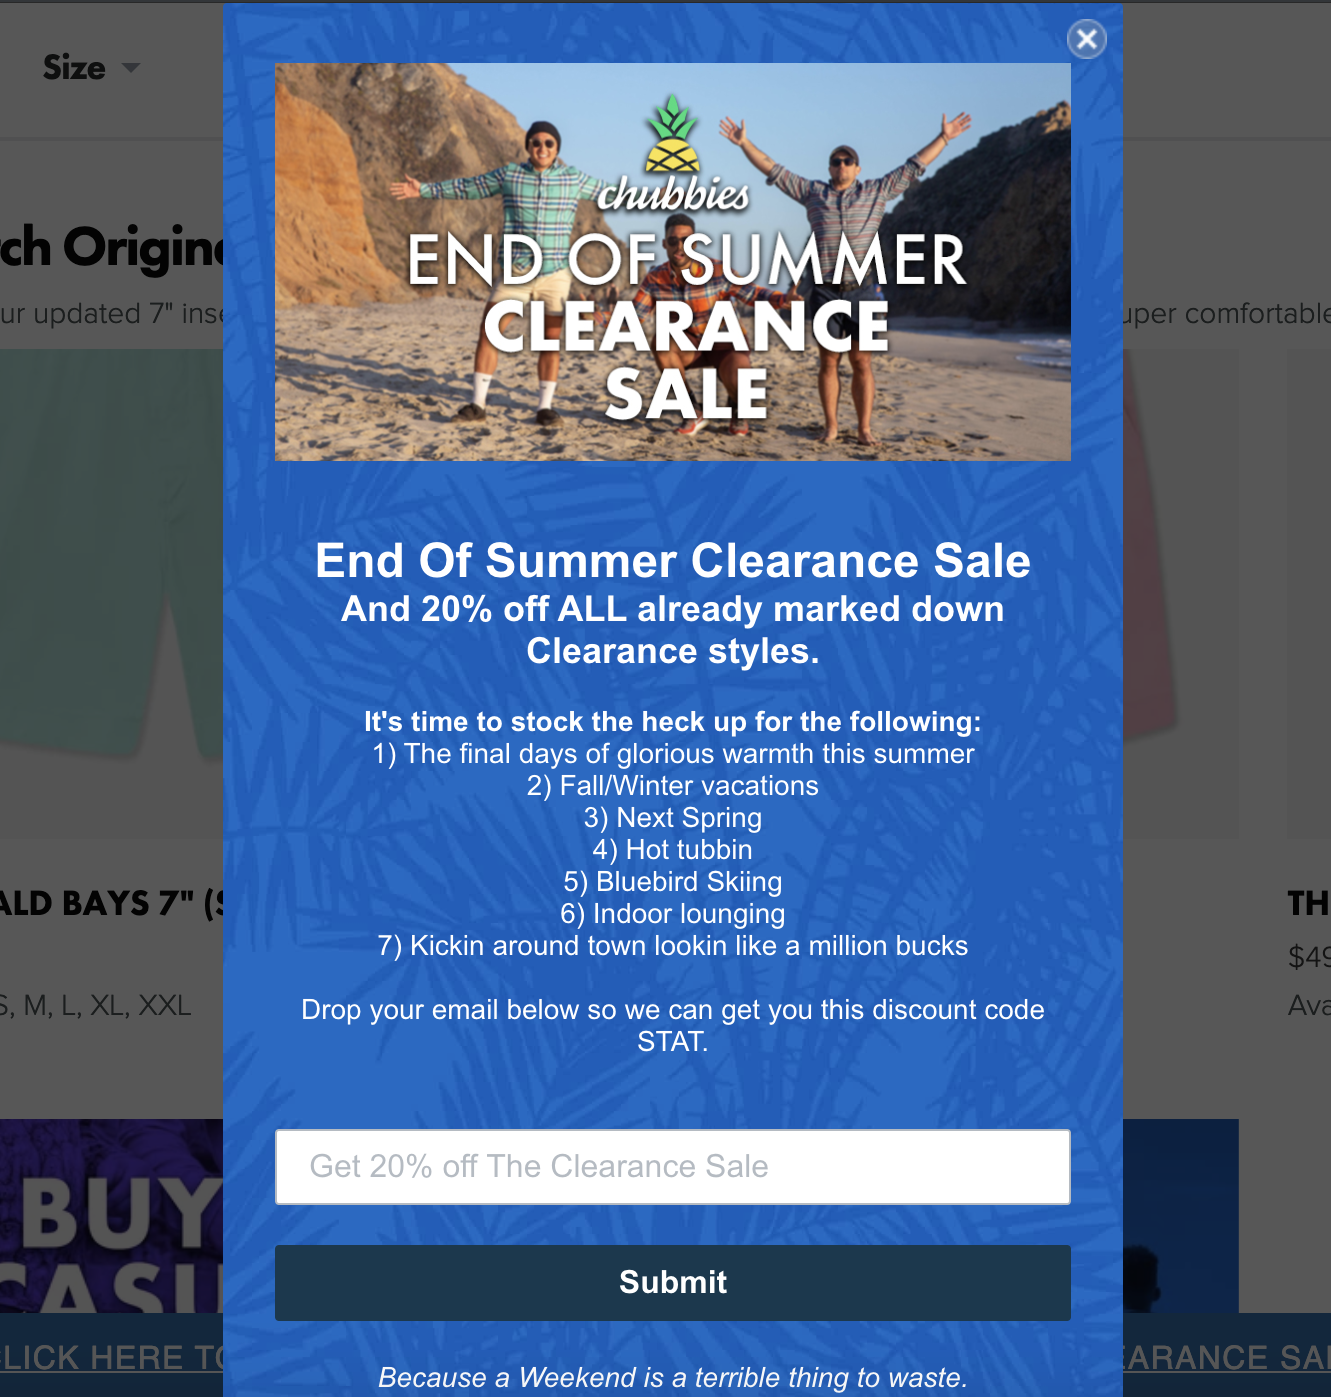 email-opt-in-idea-chubbies